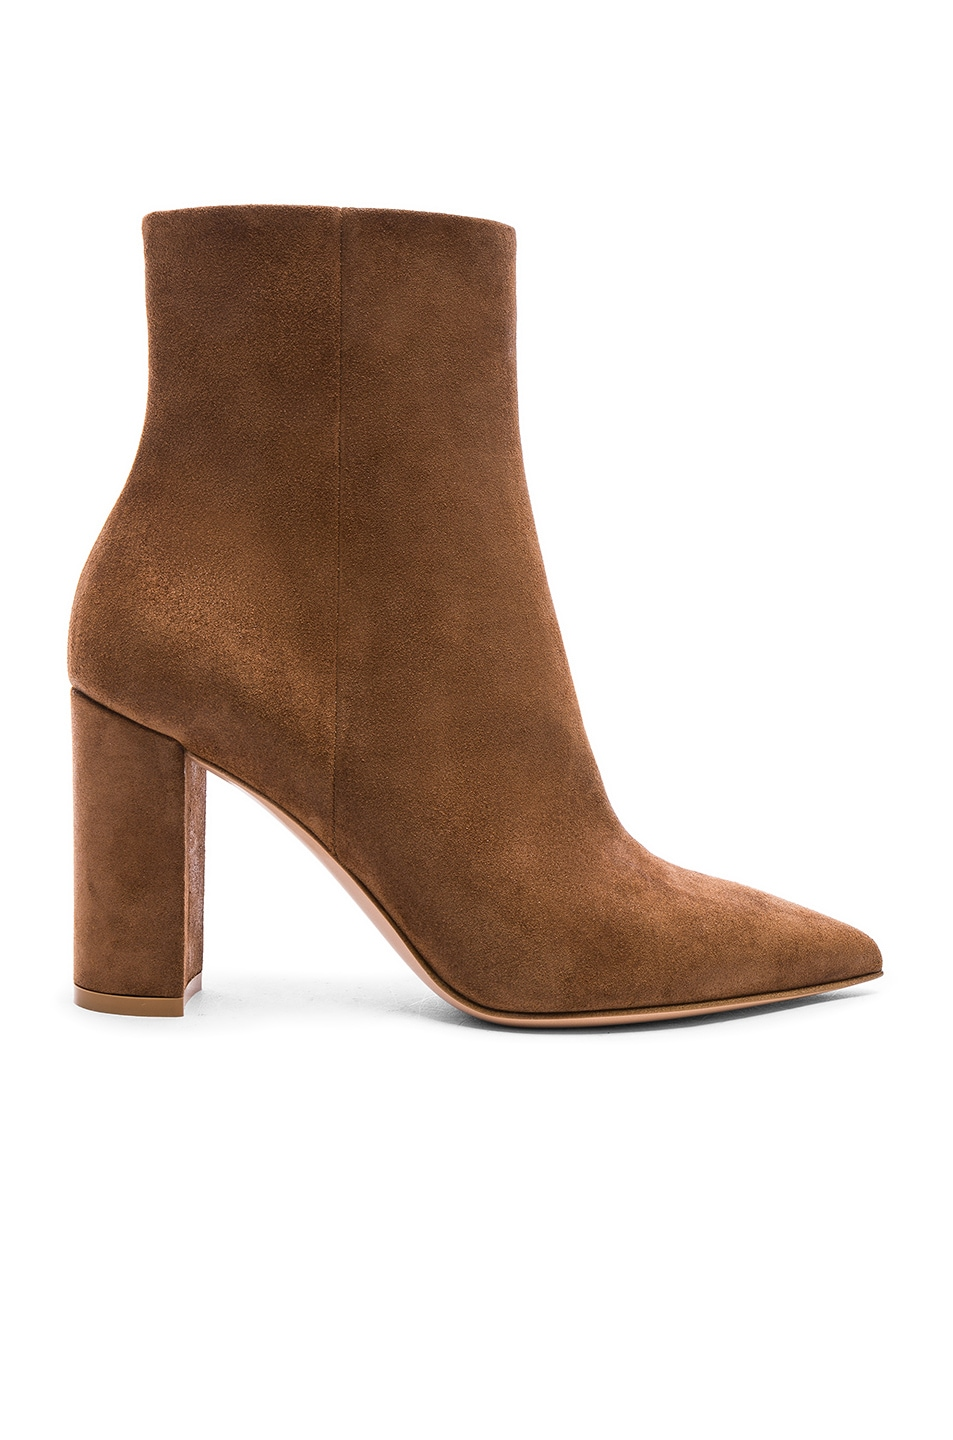 Image 1 of Gianvito Rossi Suede Piper Ankle Boots in Texas